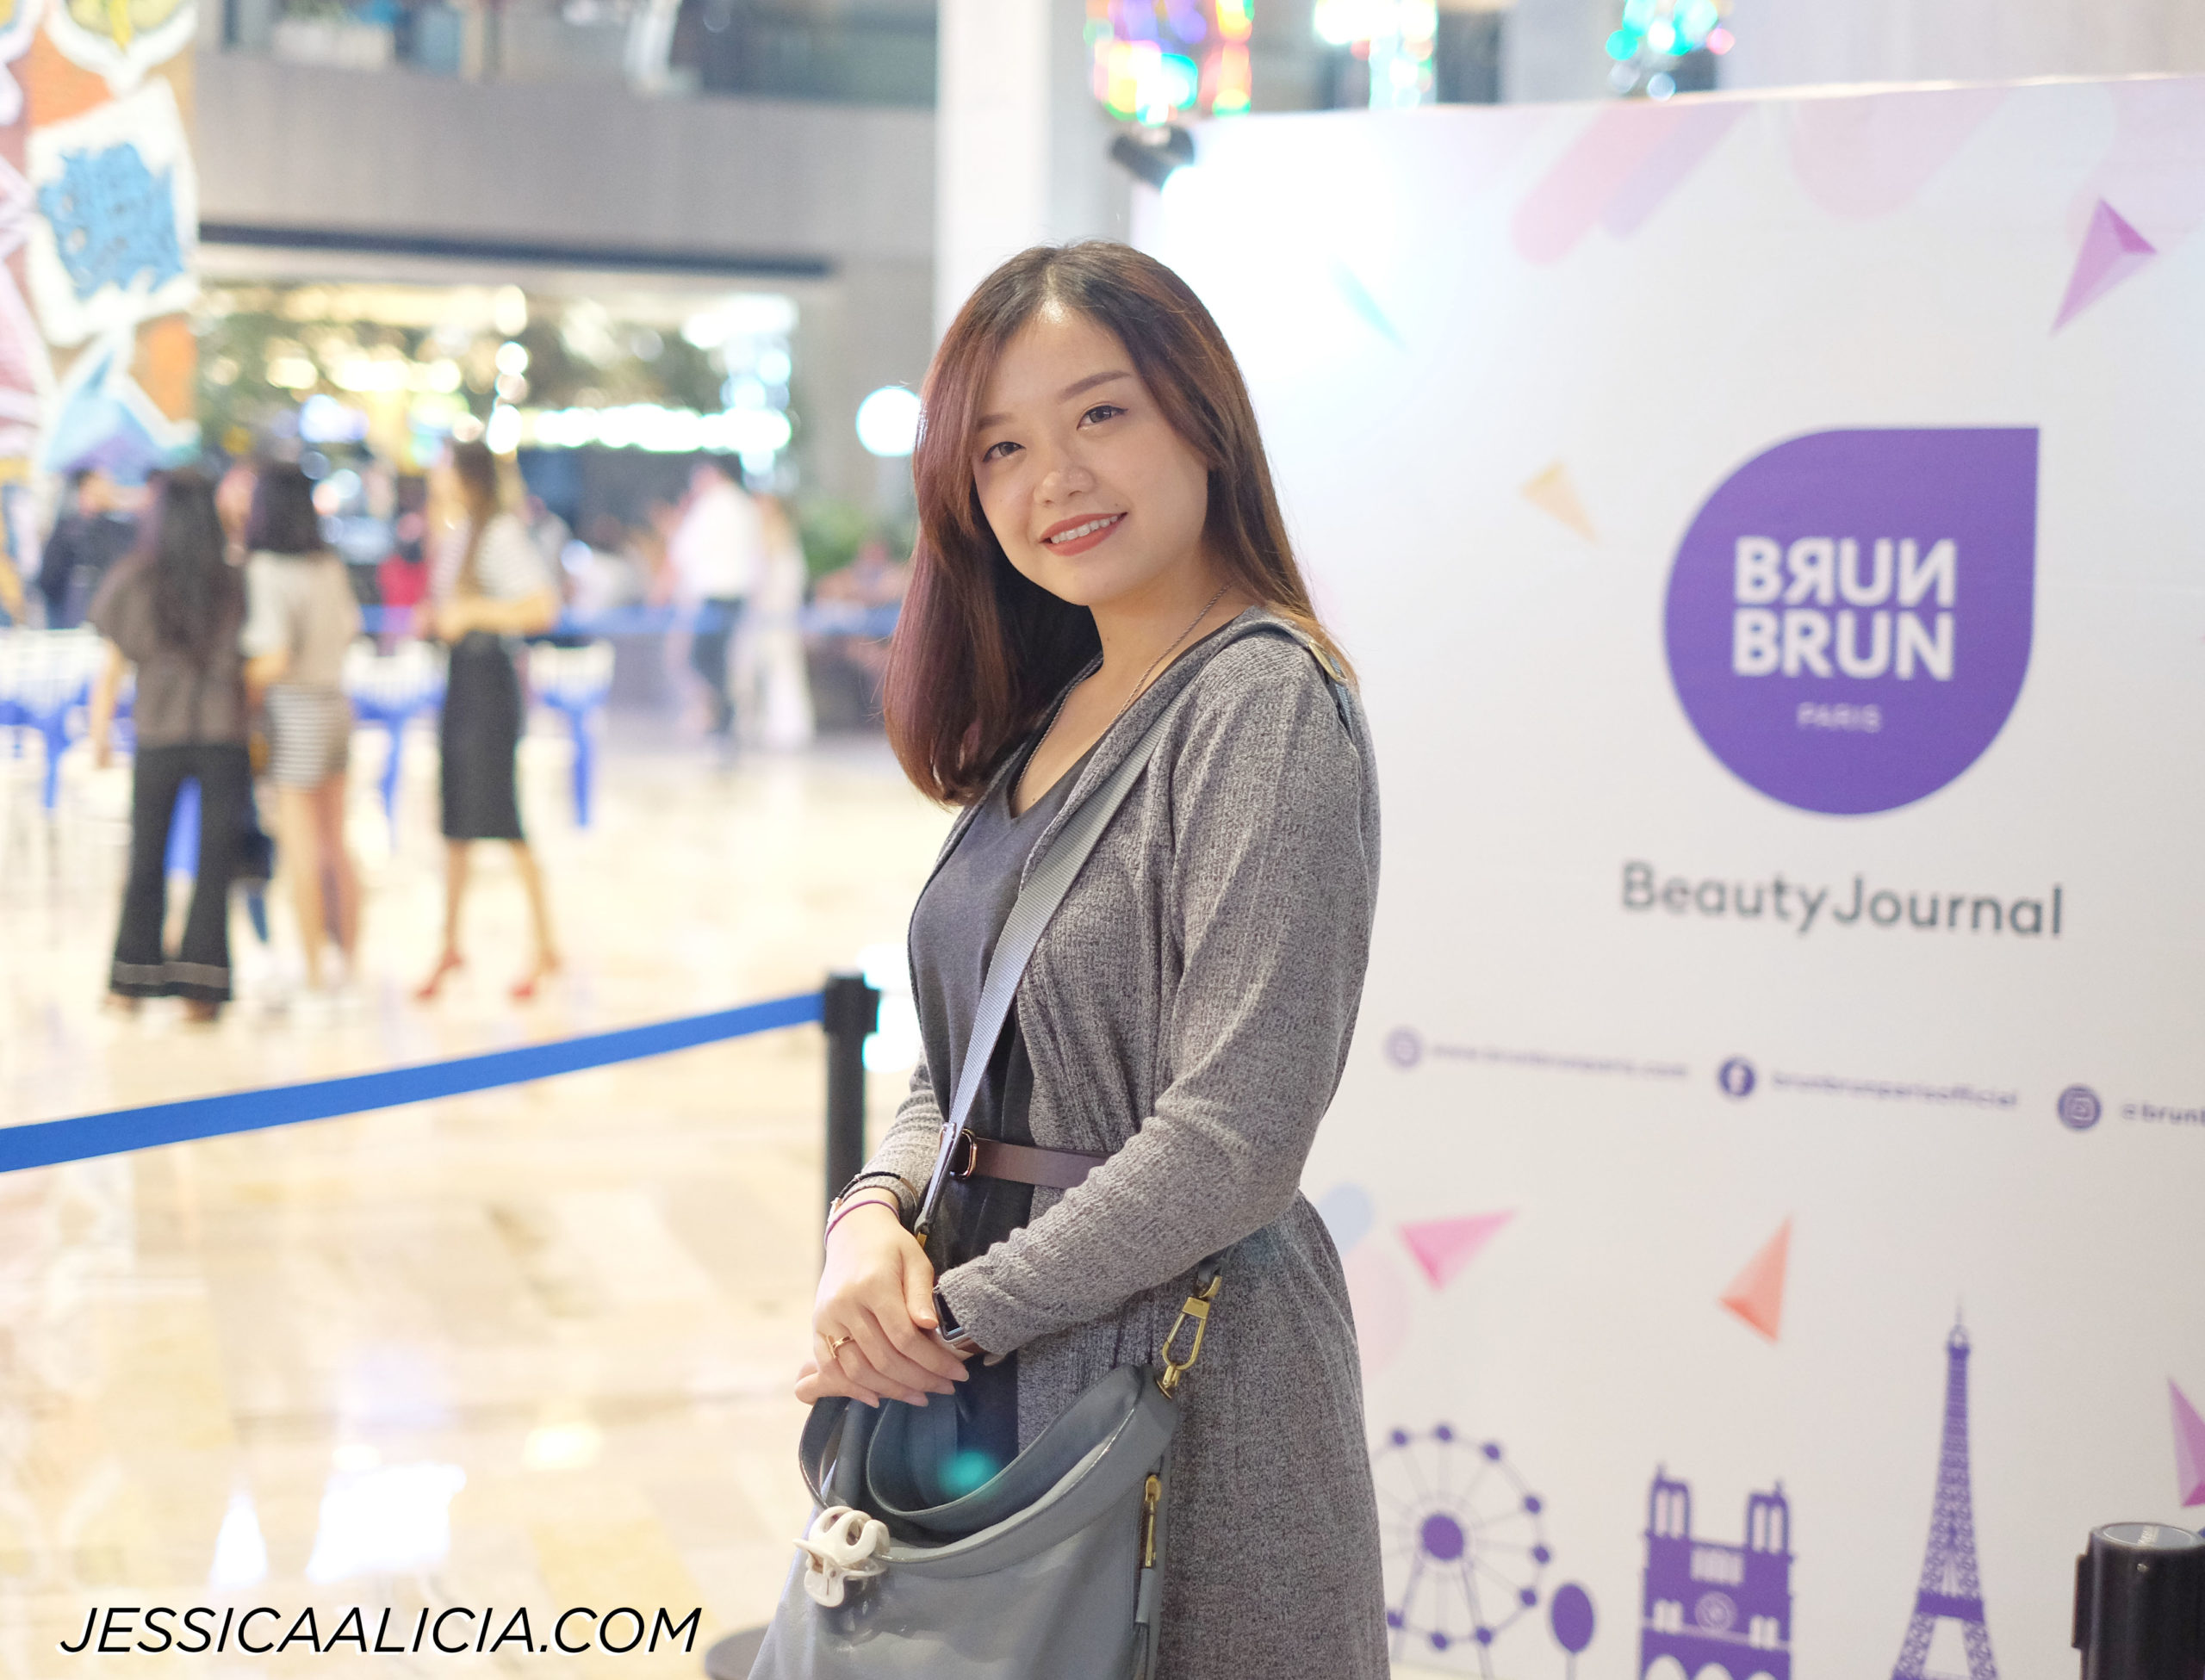 Event Report : Beauty Journal x BRUNBRUN Paris Roadshow - Parisienne Party Look